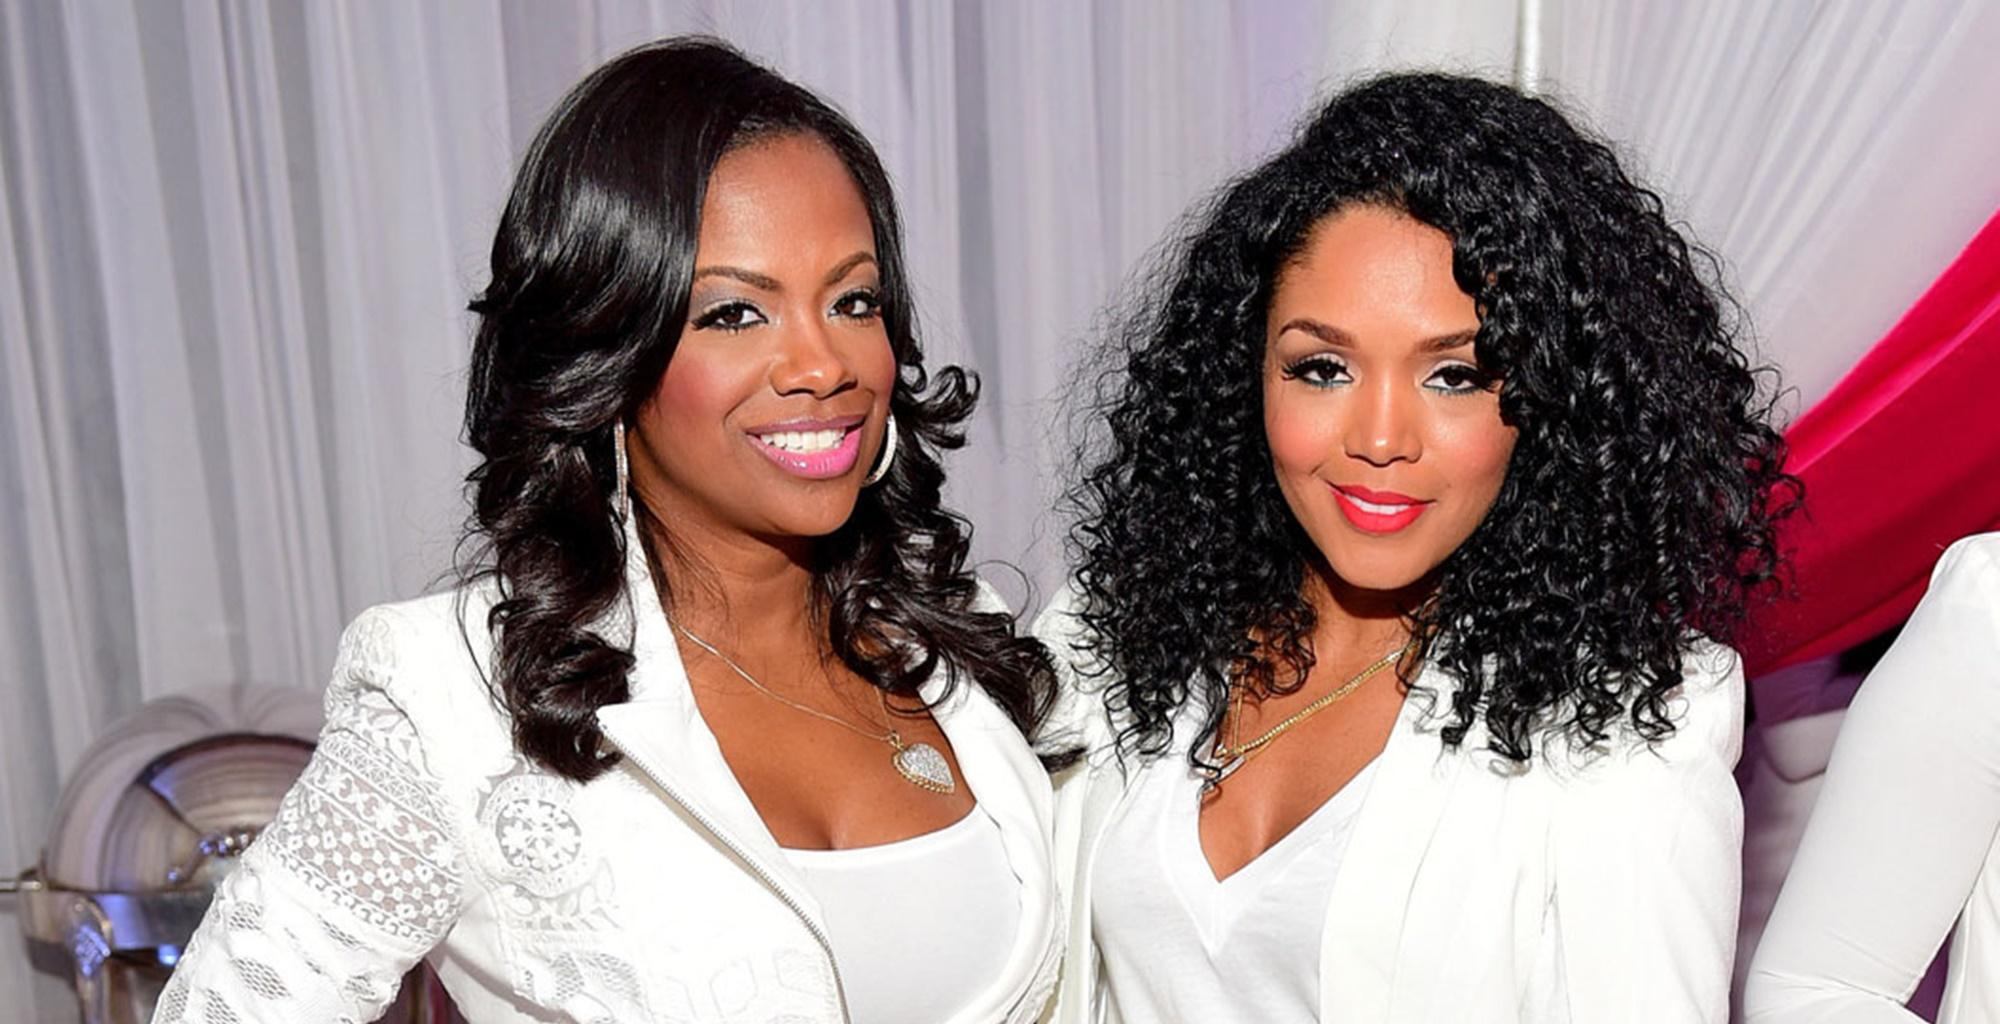 Kandi Burruss, Rasheeda Frost, And Their Families Are Celebrating The Holidays In Jamaica - Check Out Kandi's Fun Pics With Ace Wells Tucker And Karter Frost